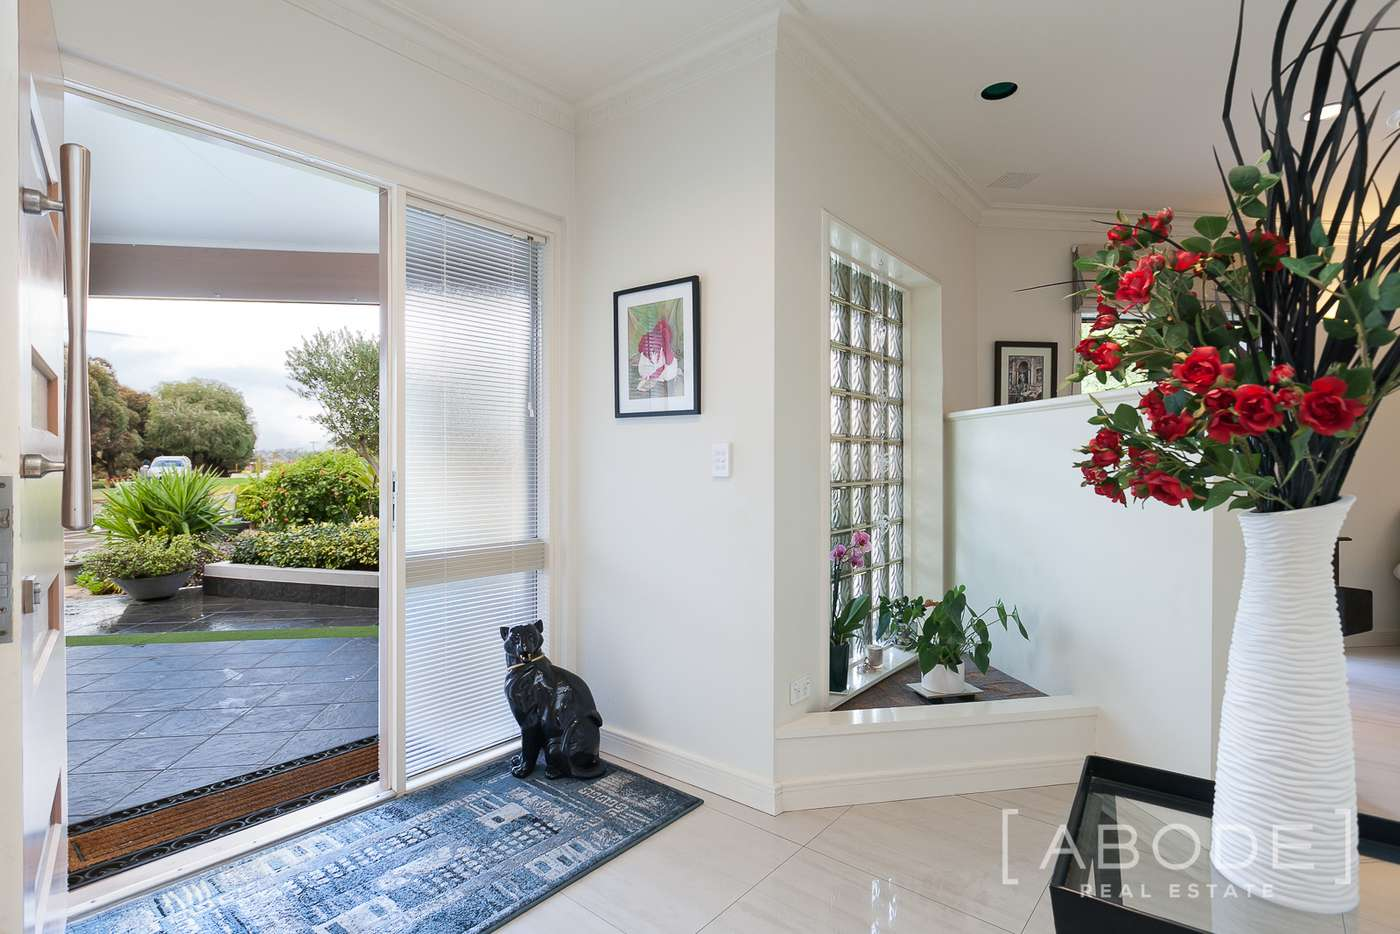 Sixth view of Homely house listing, 75 Lanchester Way, Stirling WA 6021